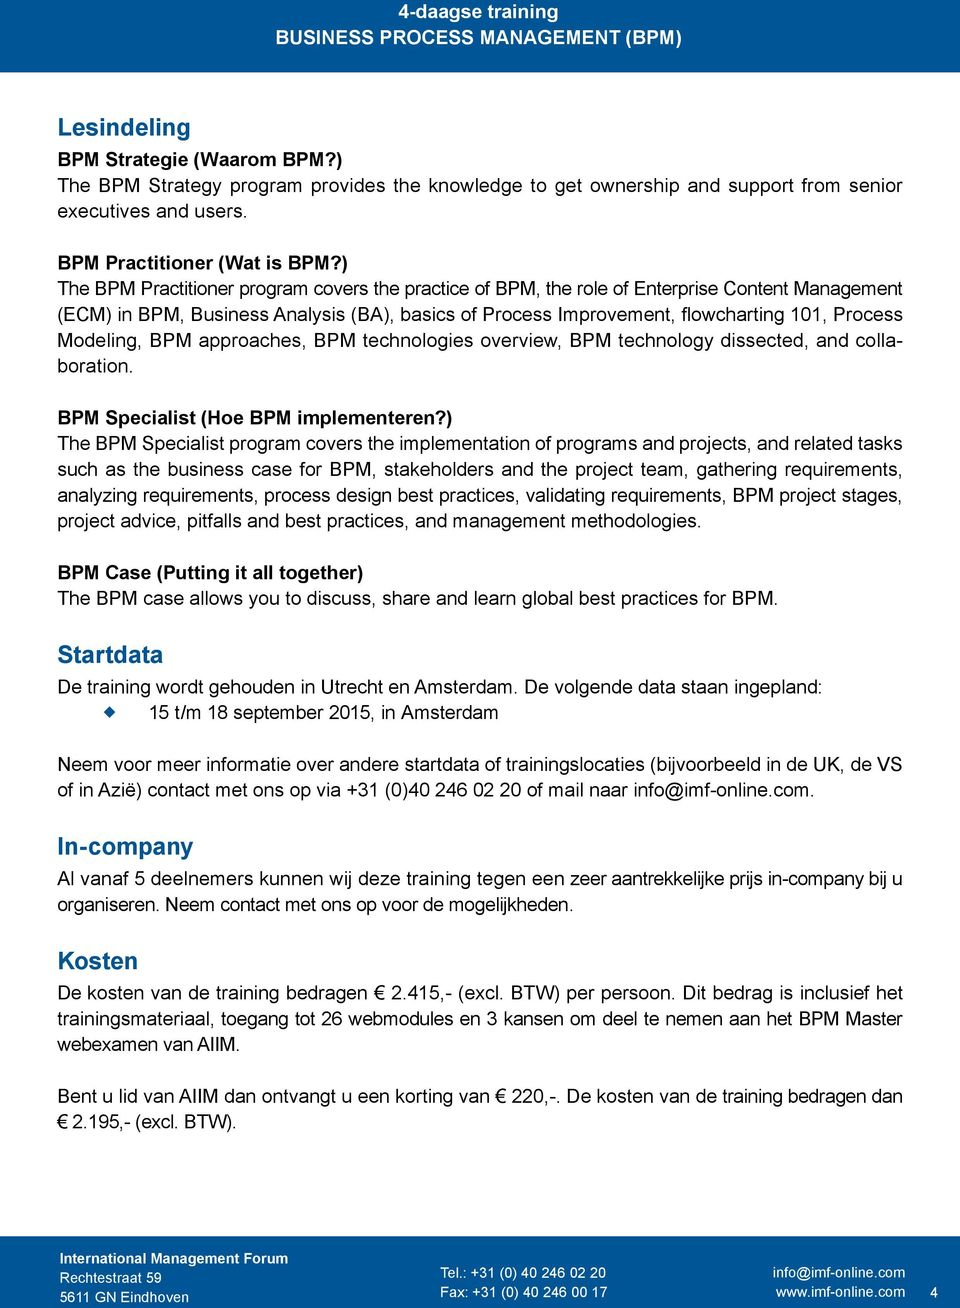 Modeling, BPM approaches, BPM technologies overview, BPM technology dissected, and collaboration. BPM Specialist (Hoe BPM implementeren?